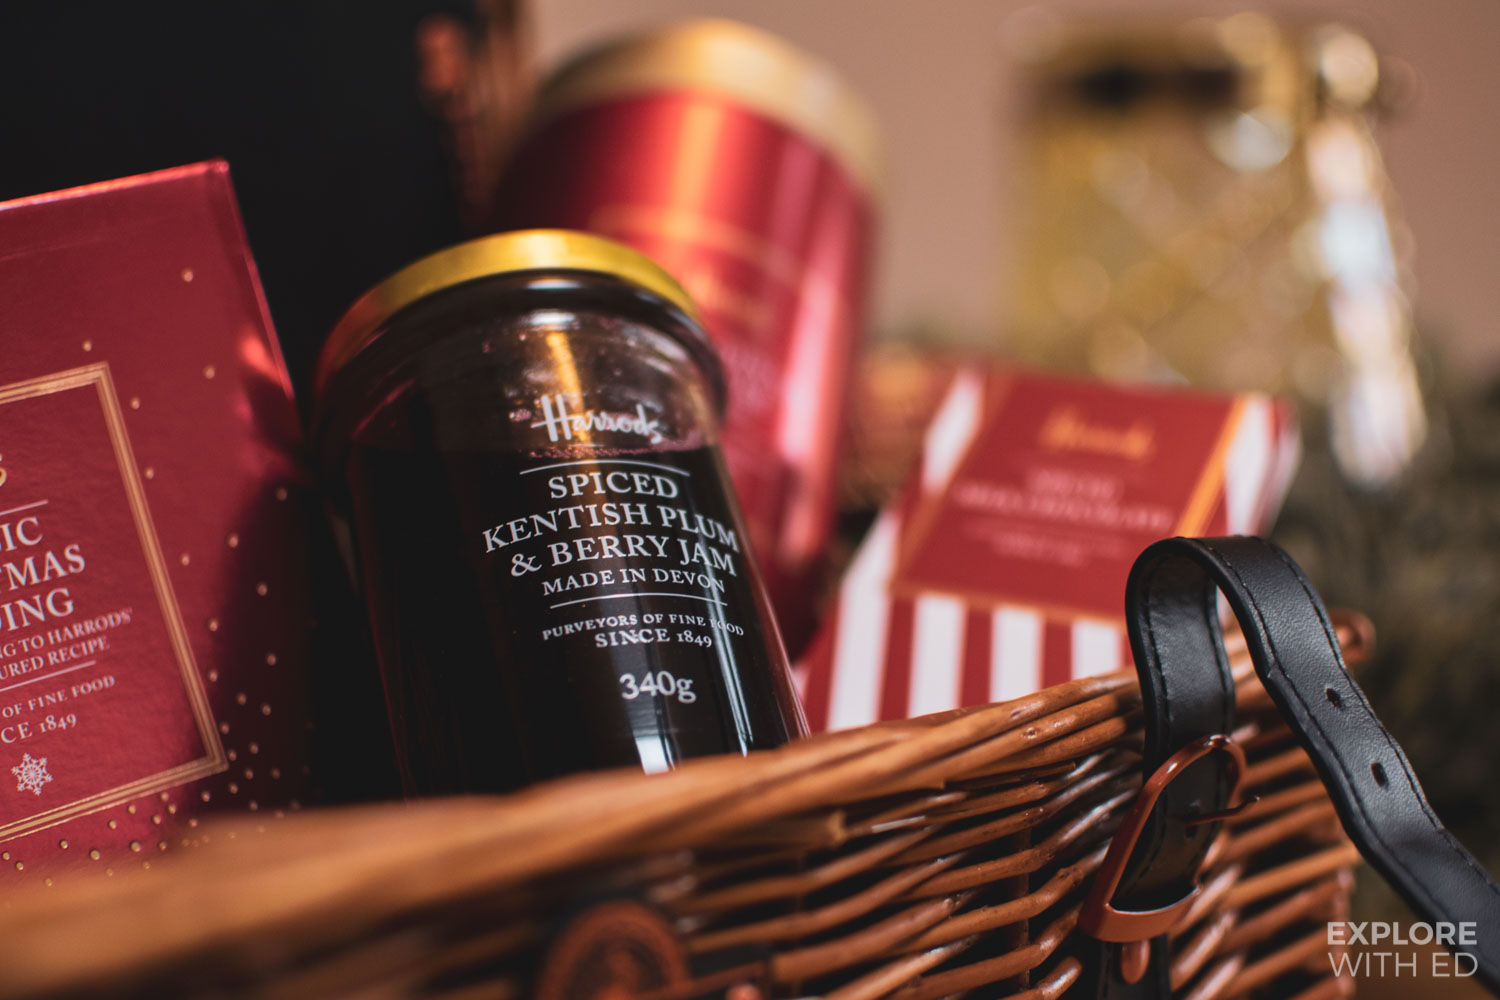 Harrods Christmas Hamper spiced Kentish plum and berry jam